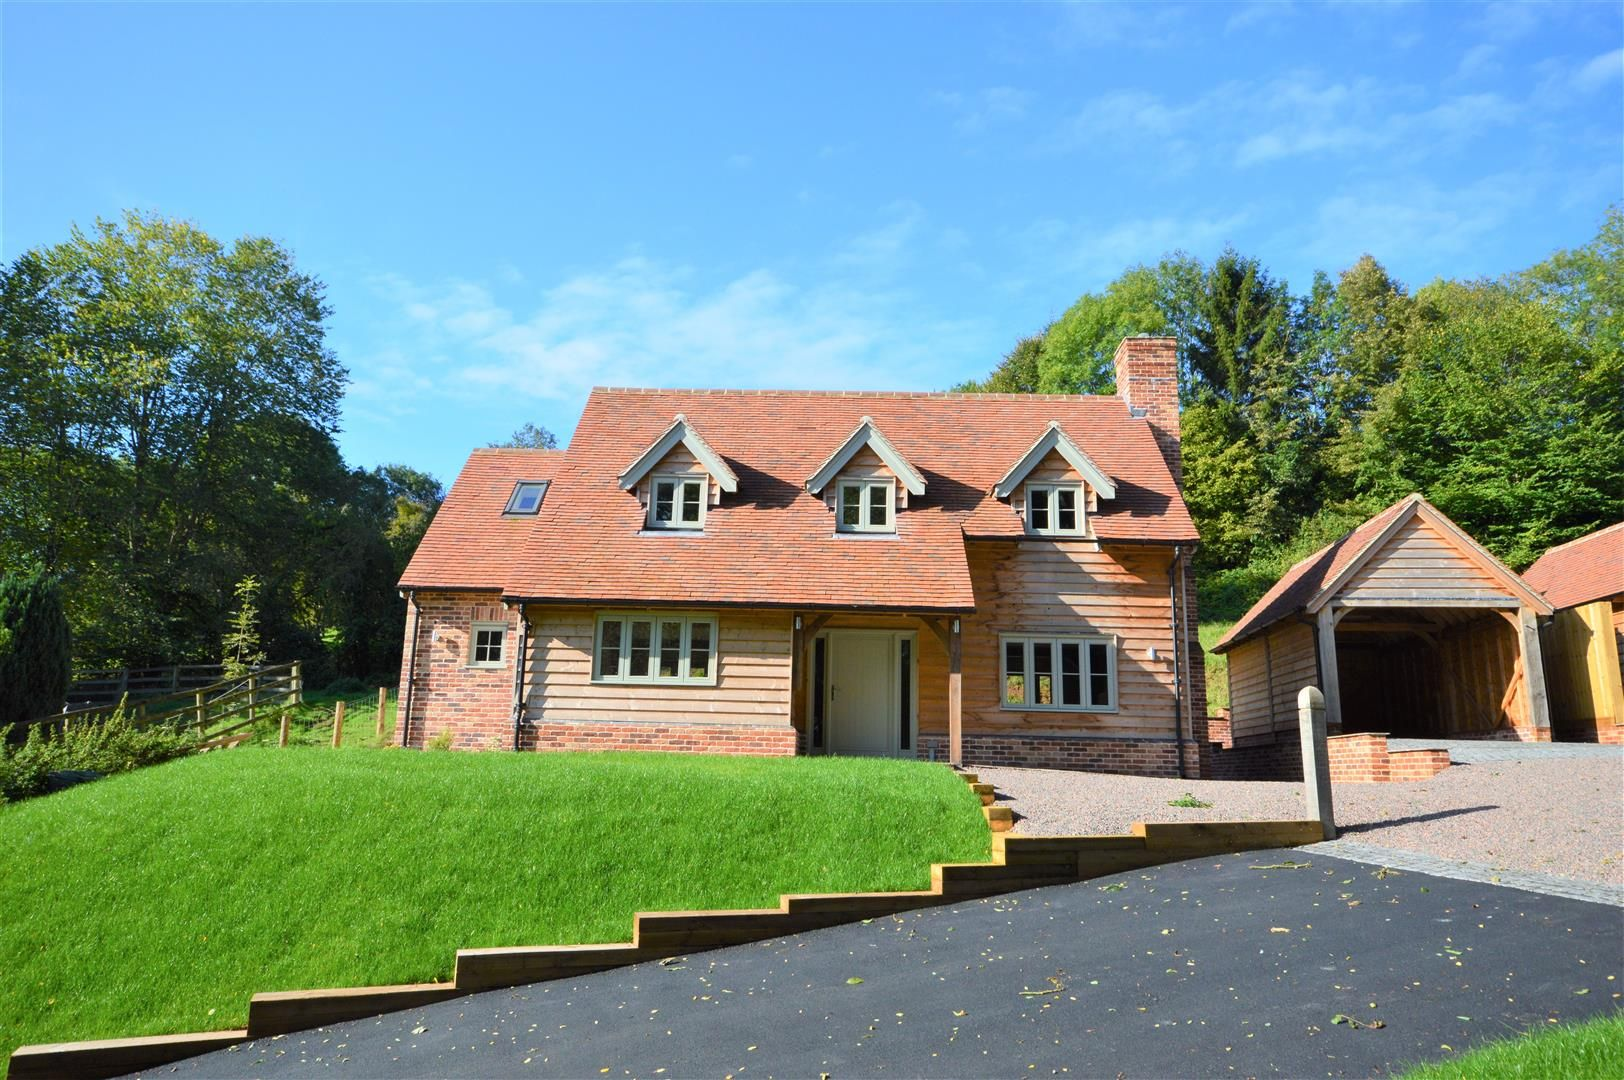 3 bed detached for sale in Dilwyn, HR4